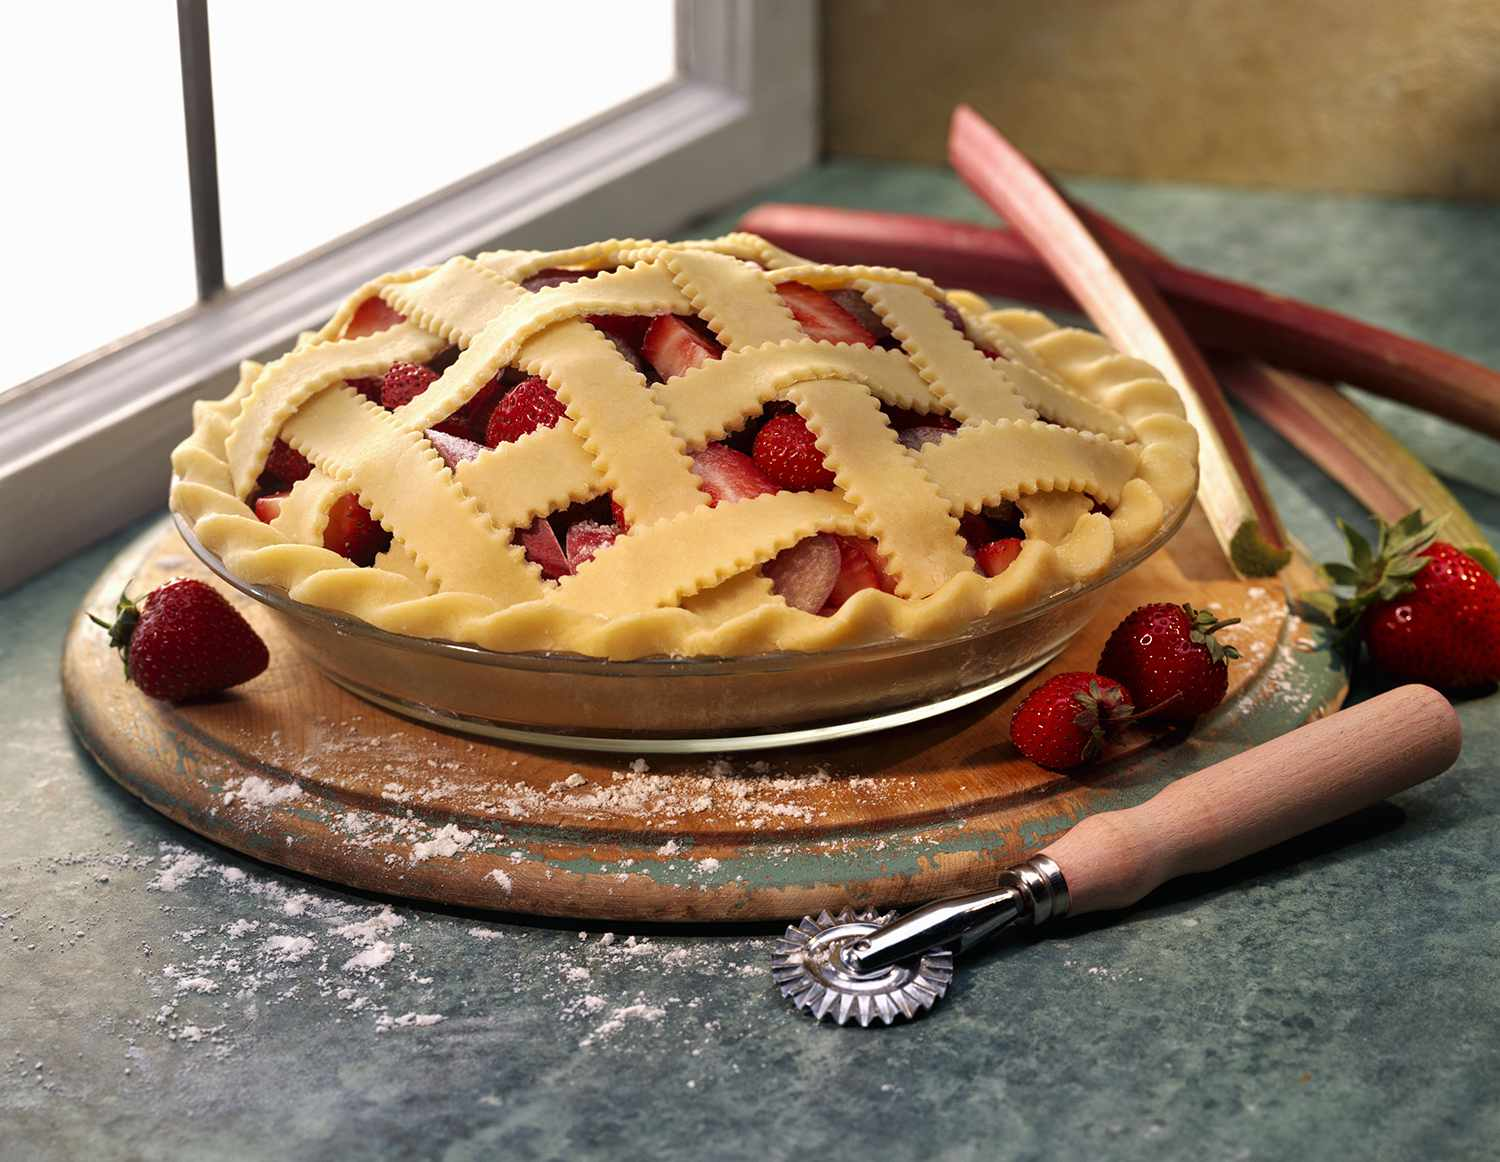 Strawberry rhubarb pie with a lattice crust, ready for the oven